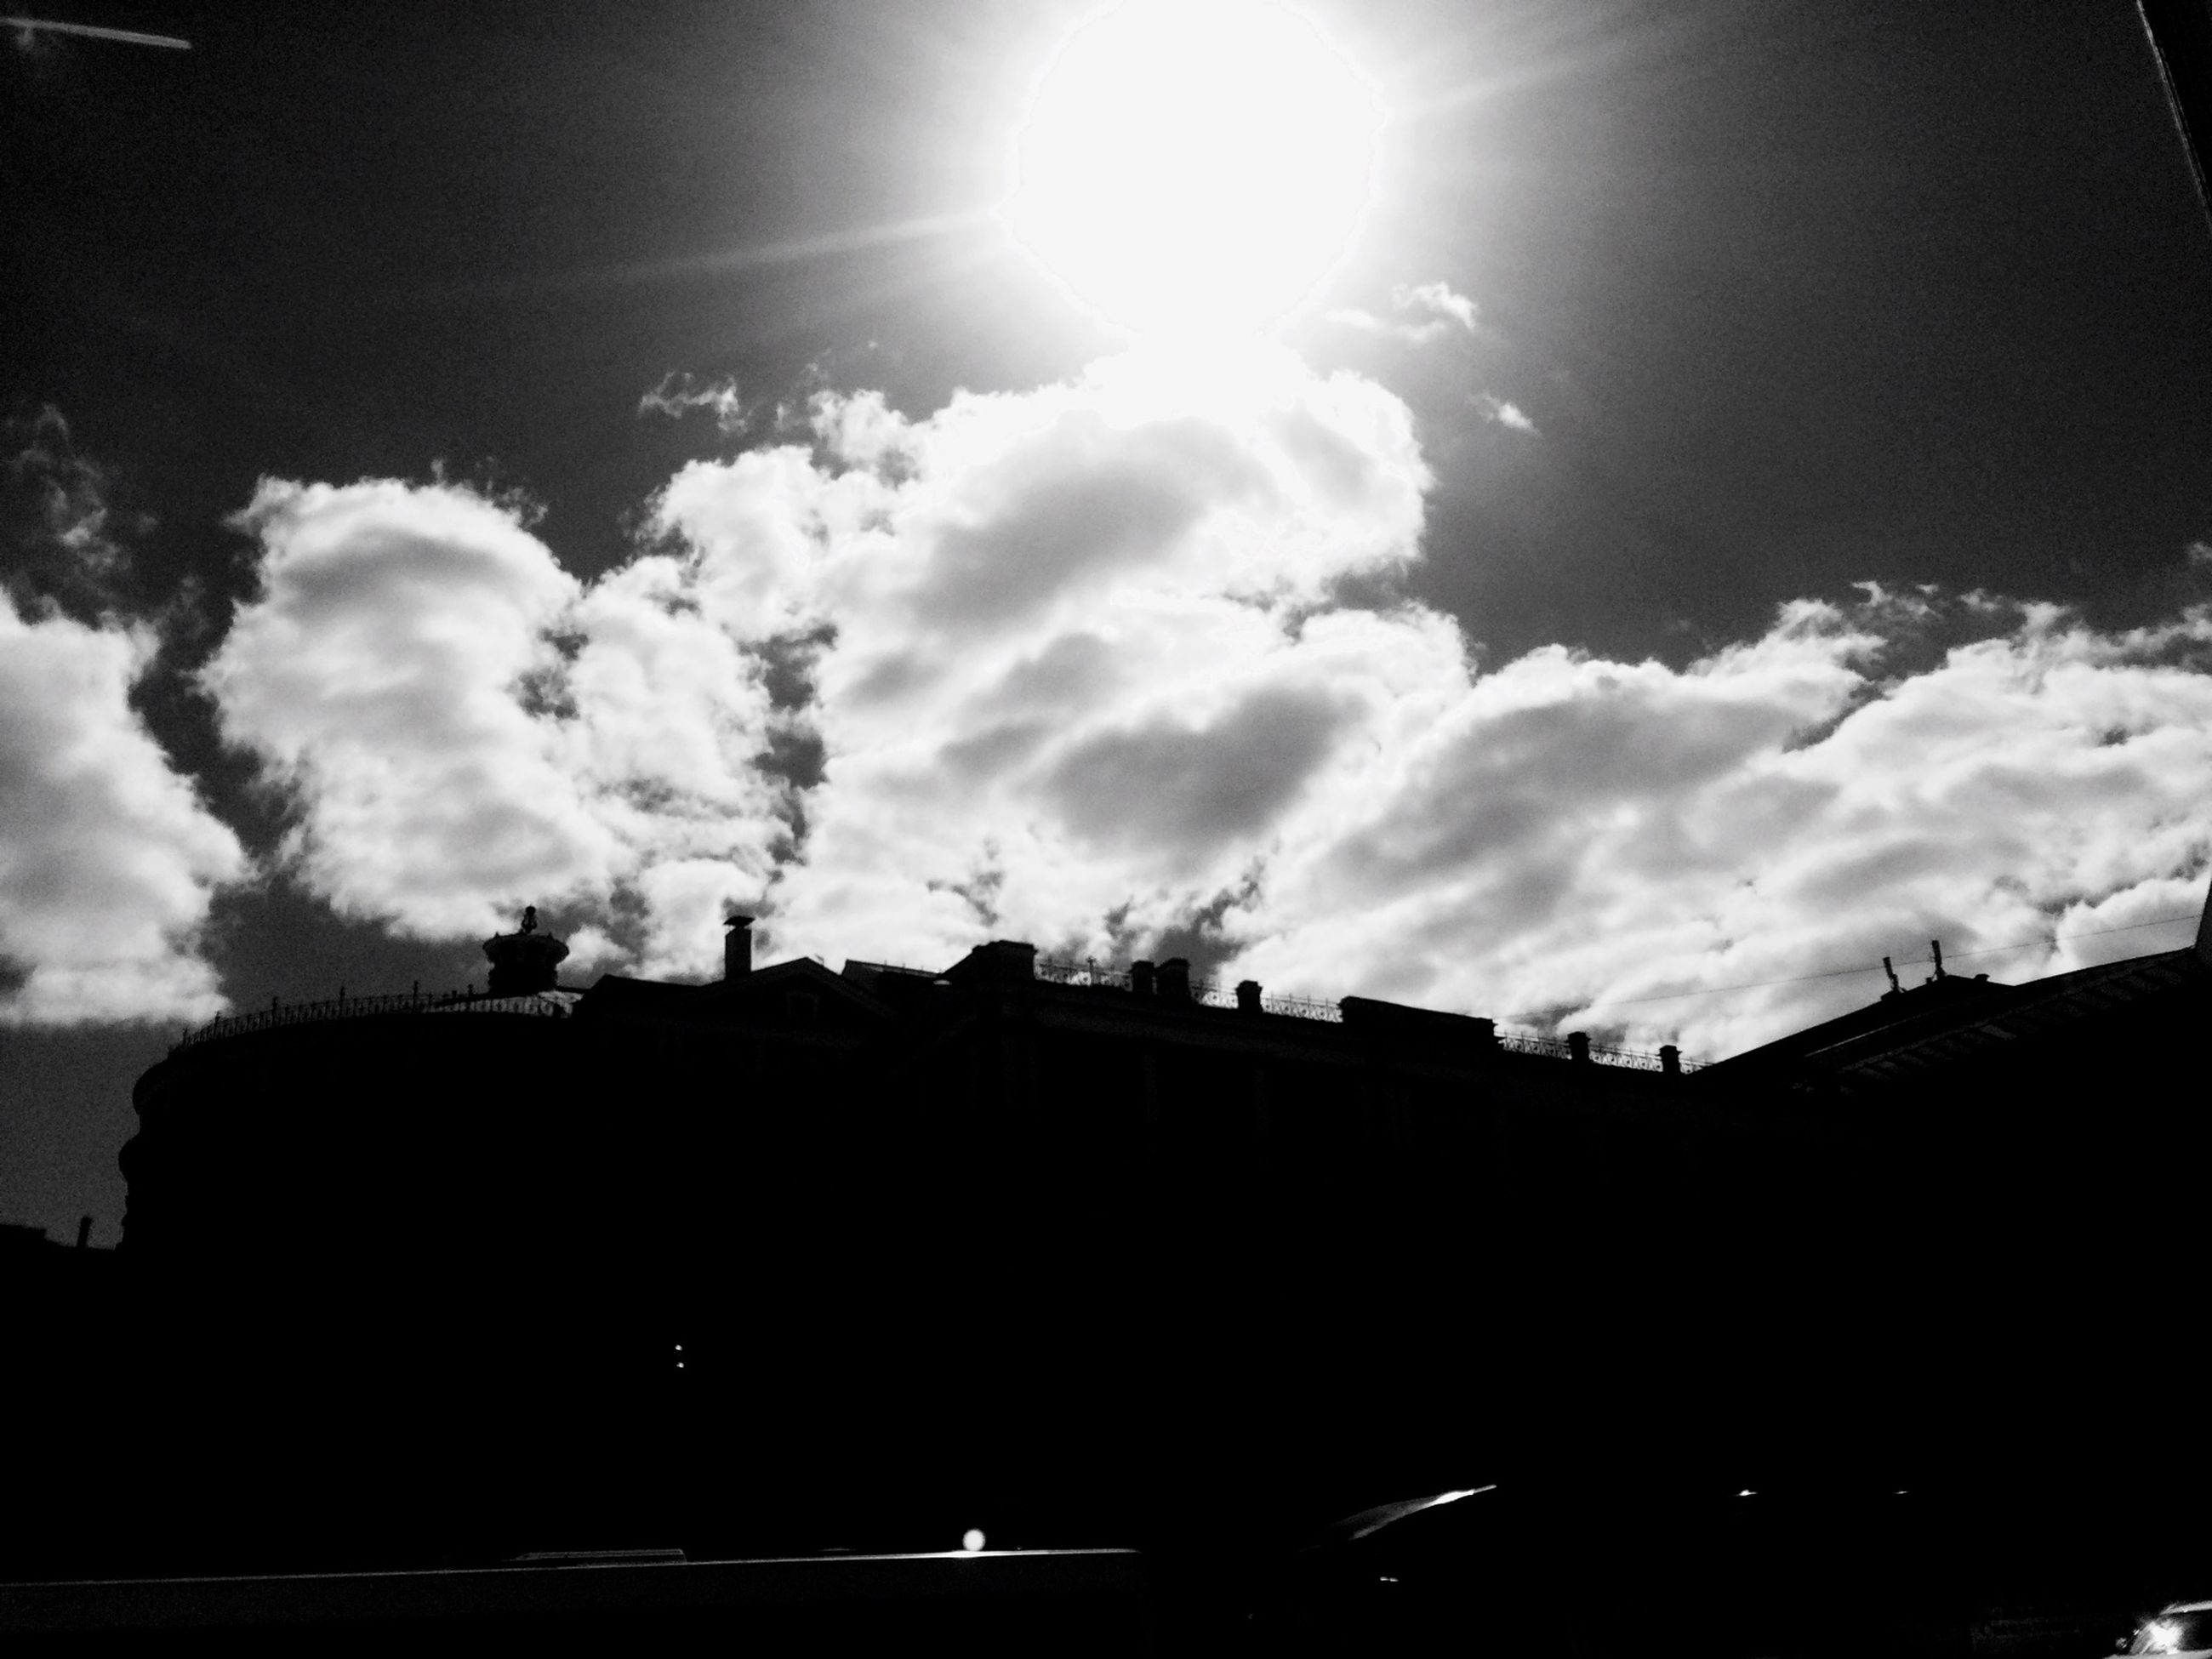 building exterior, architecture, built structure, low angle view, sky, sun, sunbeam, silhouette, sunlight, lens flare, cloud - sky, building, cloud, city, street light, outdoors, house, residential building, no people, sunny